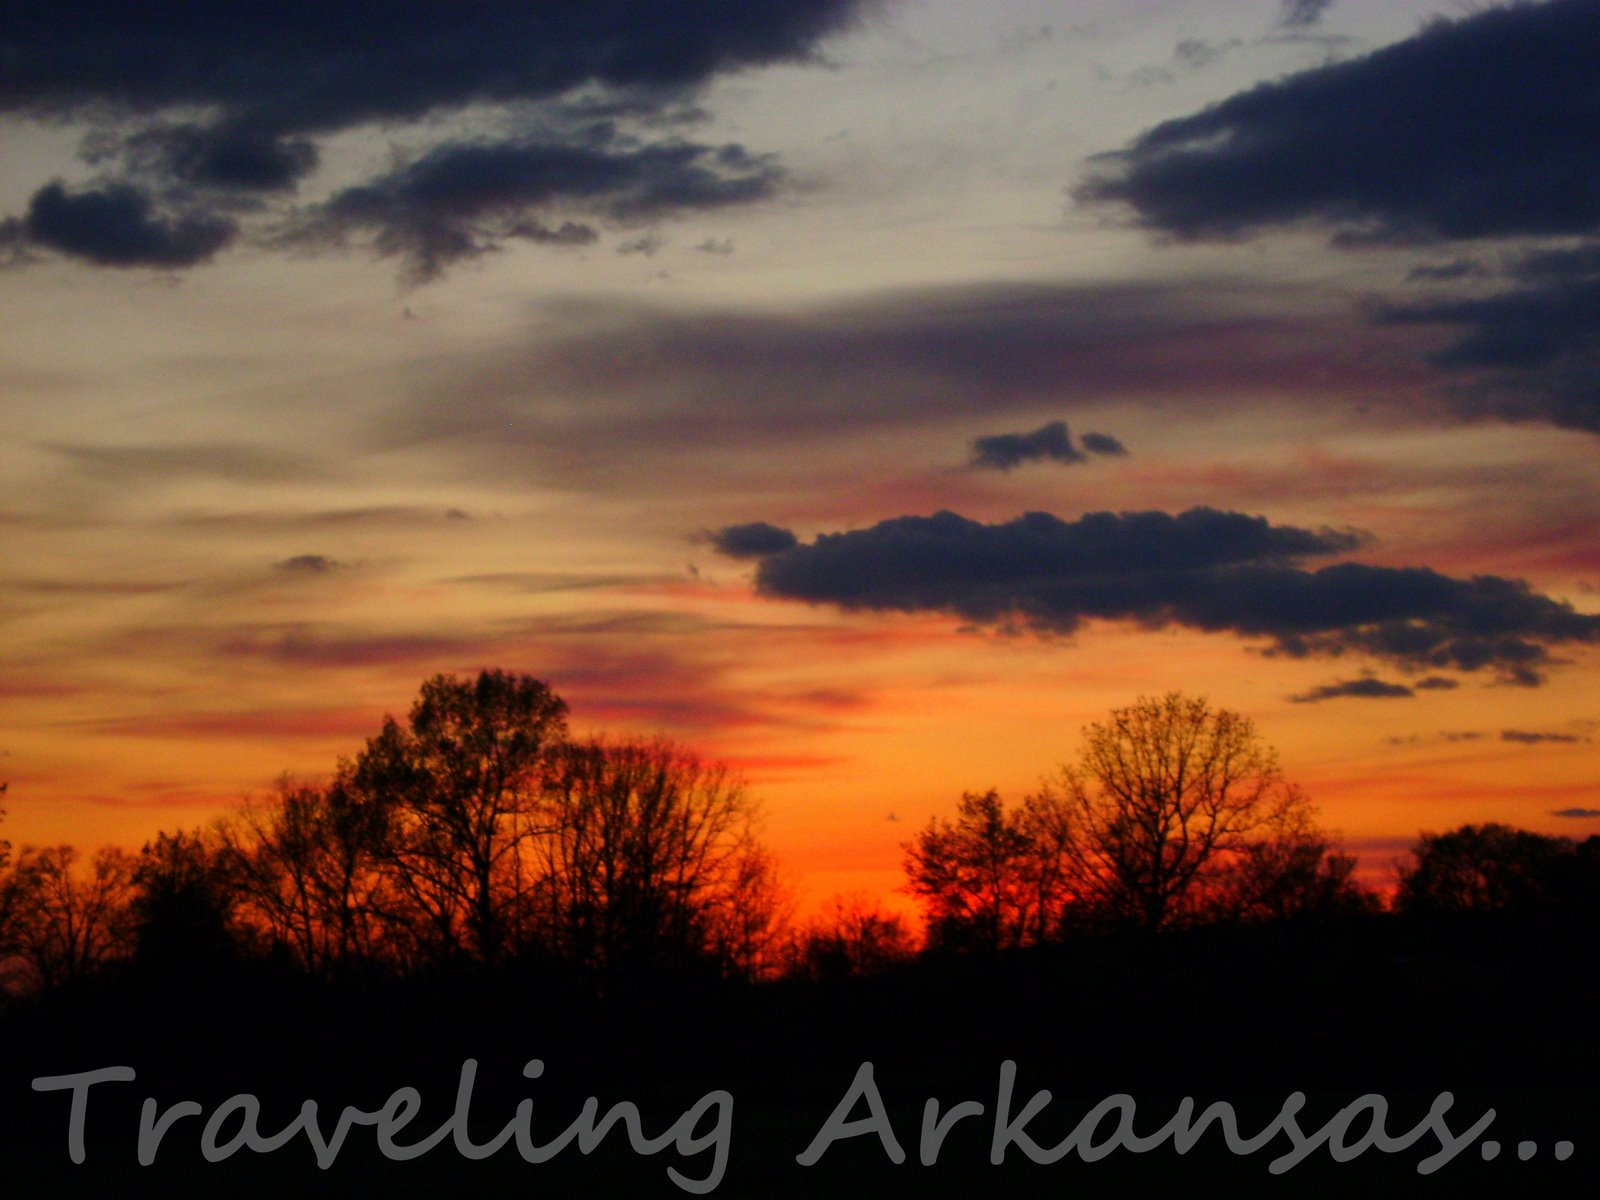 Traveling Arkansas!